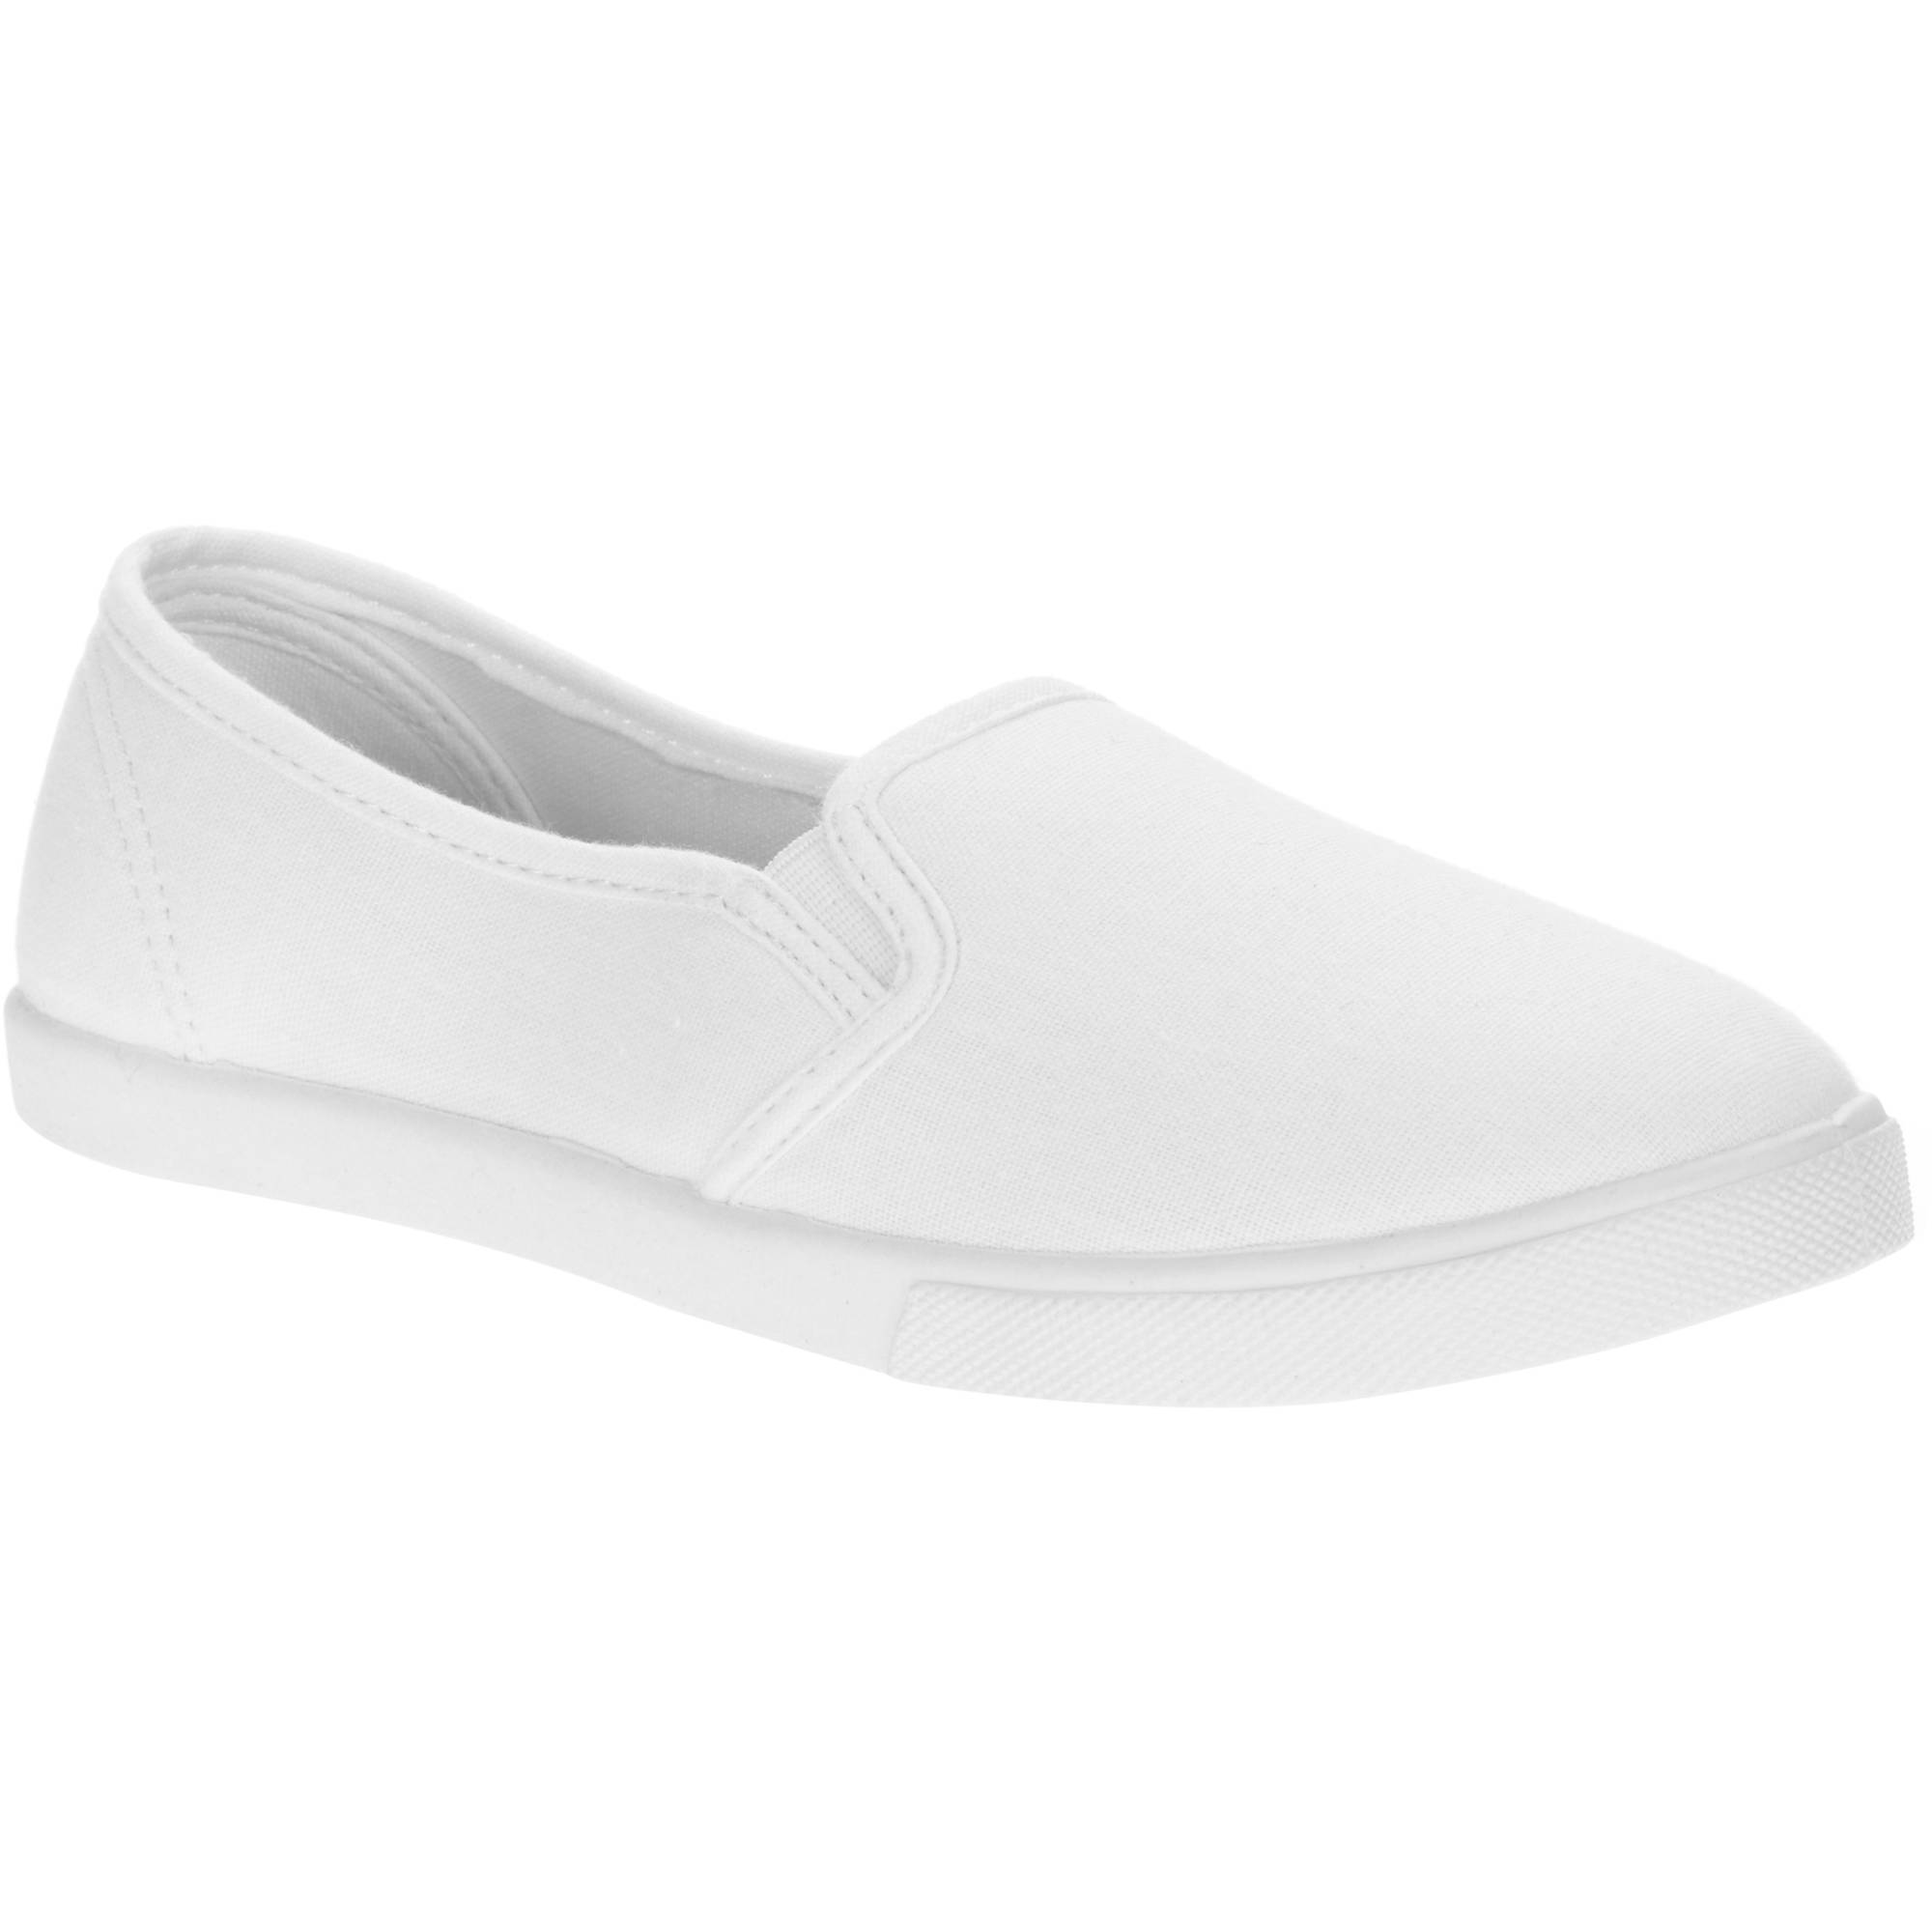 Free shipping BOTH ways on Shoes, White, Canvas, Slip-On, from our vast selection of styles. Fast delivery, and 24/7/ real-person service with a smile. Click or call